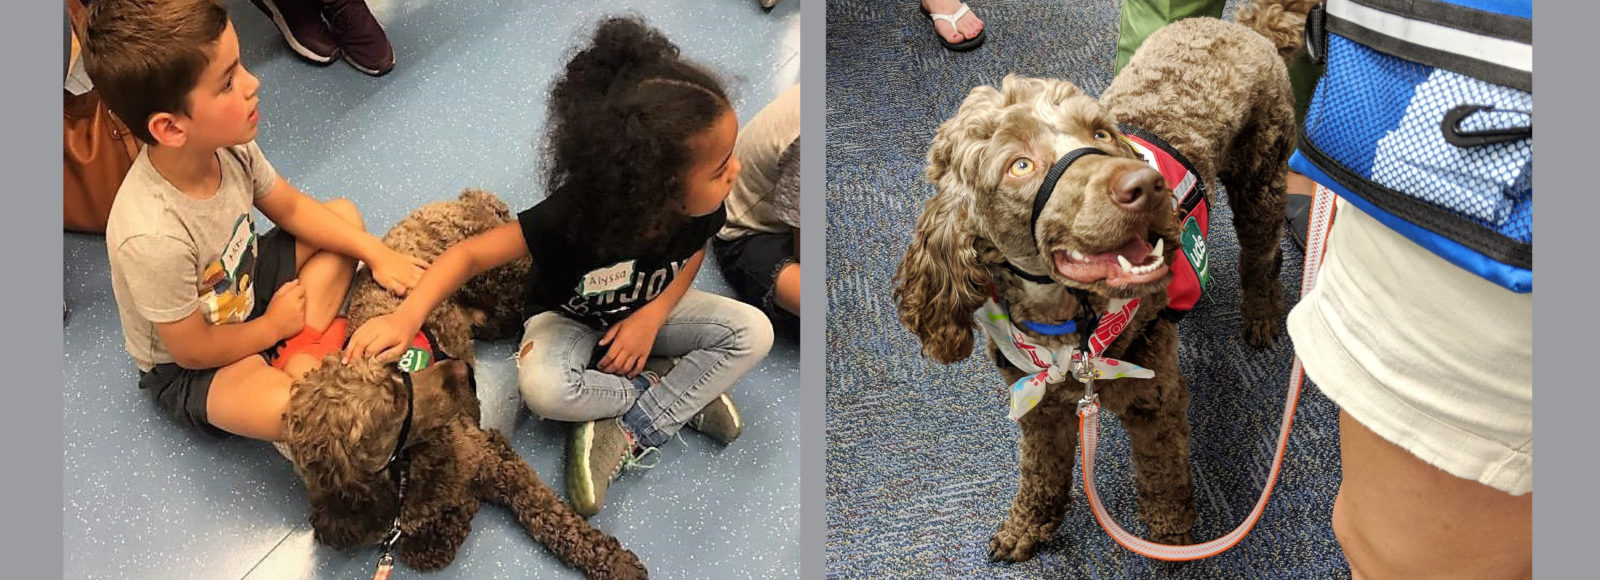 PMEF helps fund second therapy dog for Penn Manor schools